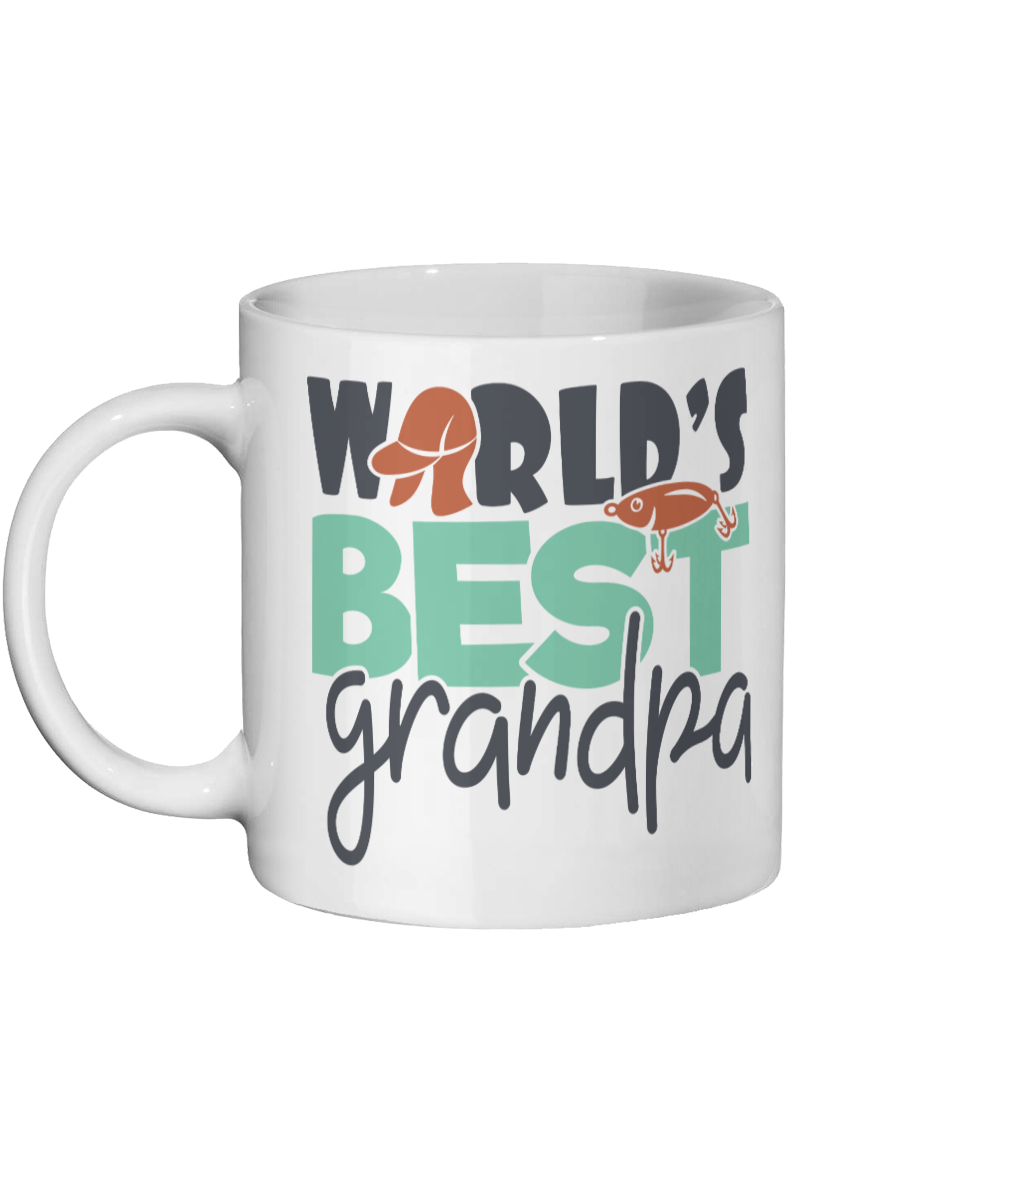 [personalised_mug]Personalised Custom Coffee Mug- Worlds Best Grandpa - status mugs